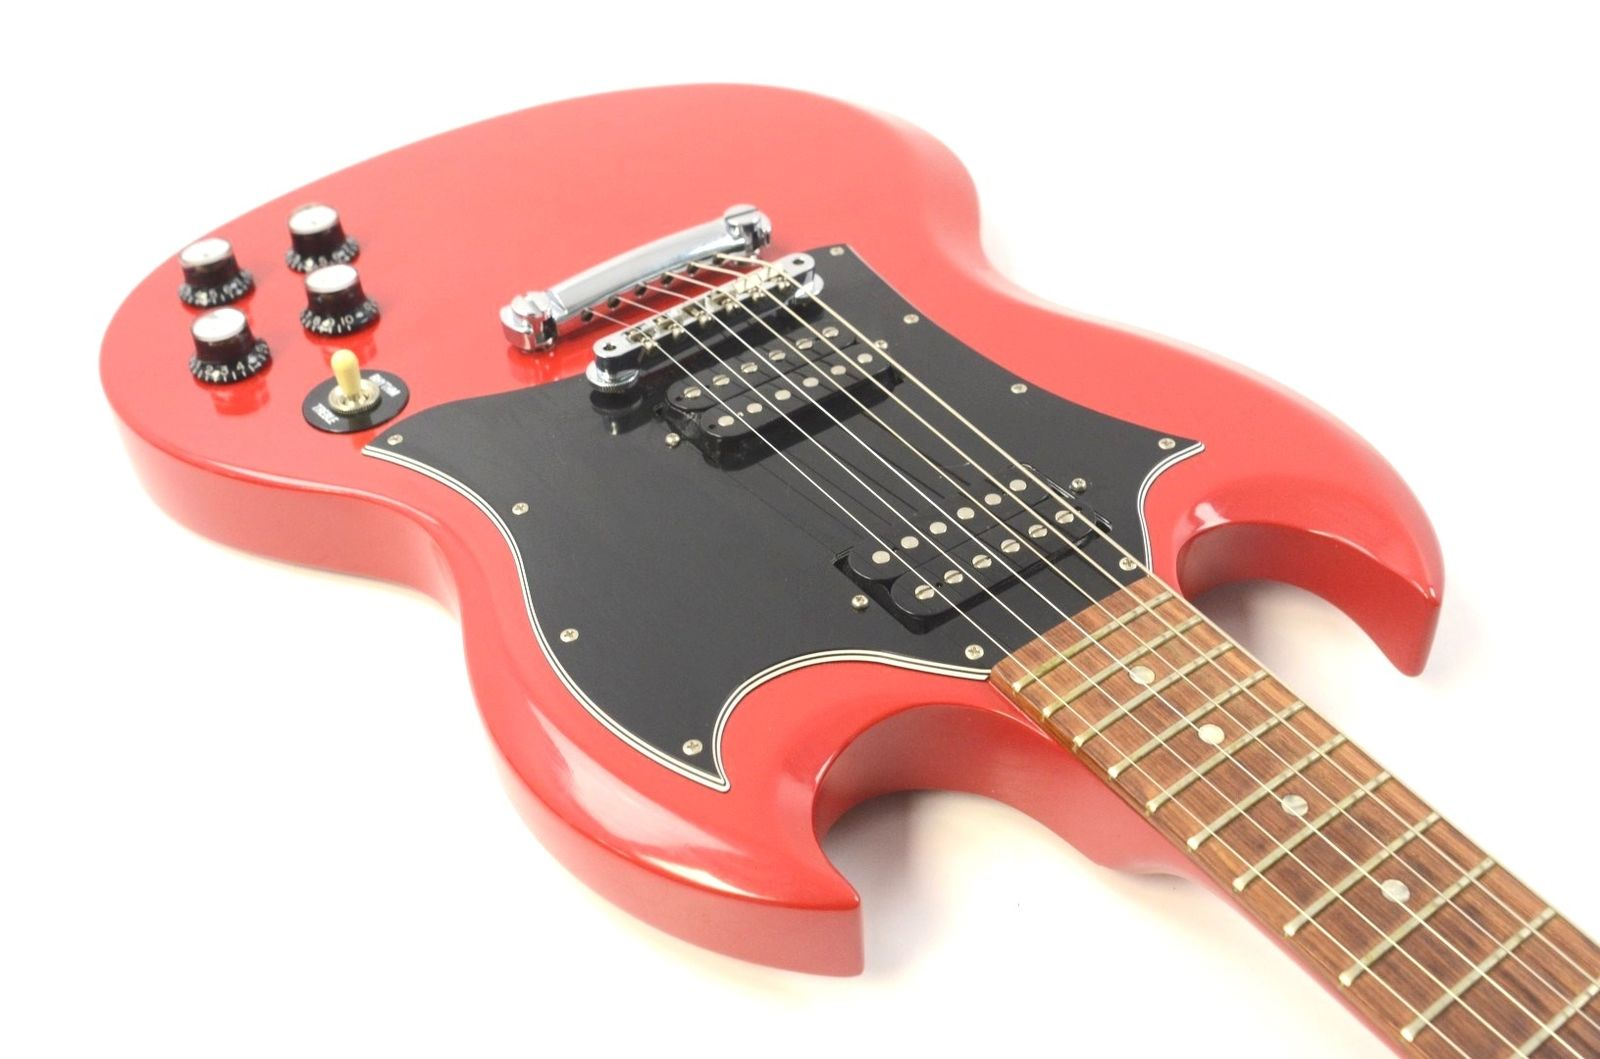 Rex and the Bass: 1996 Gibson SG Special Electric Guitar Review